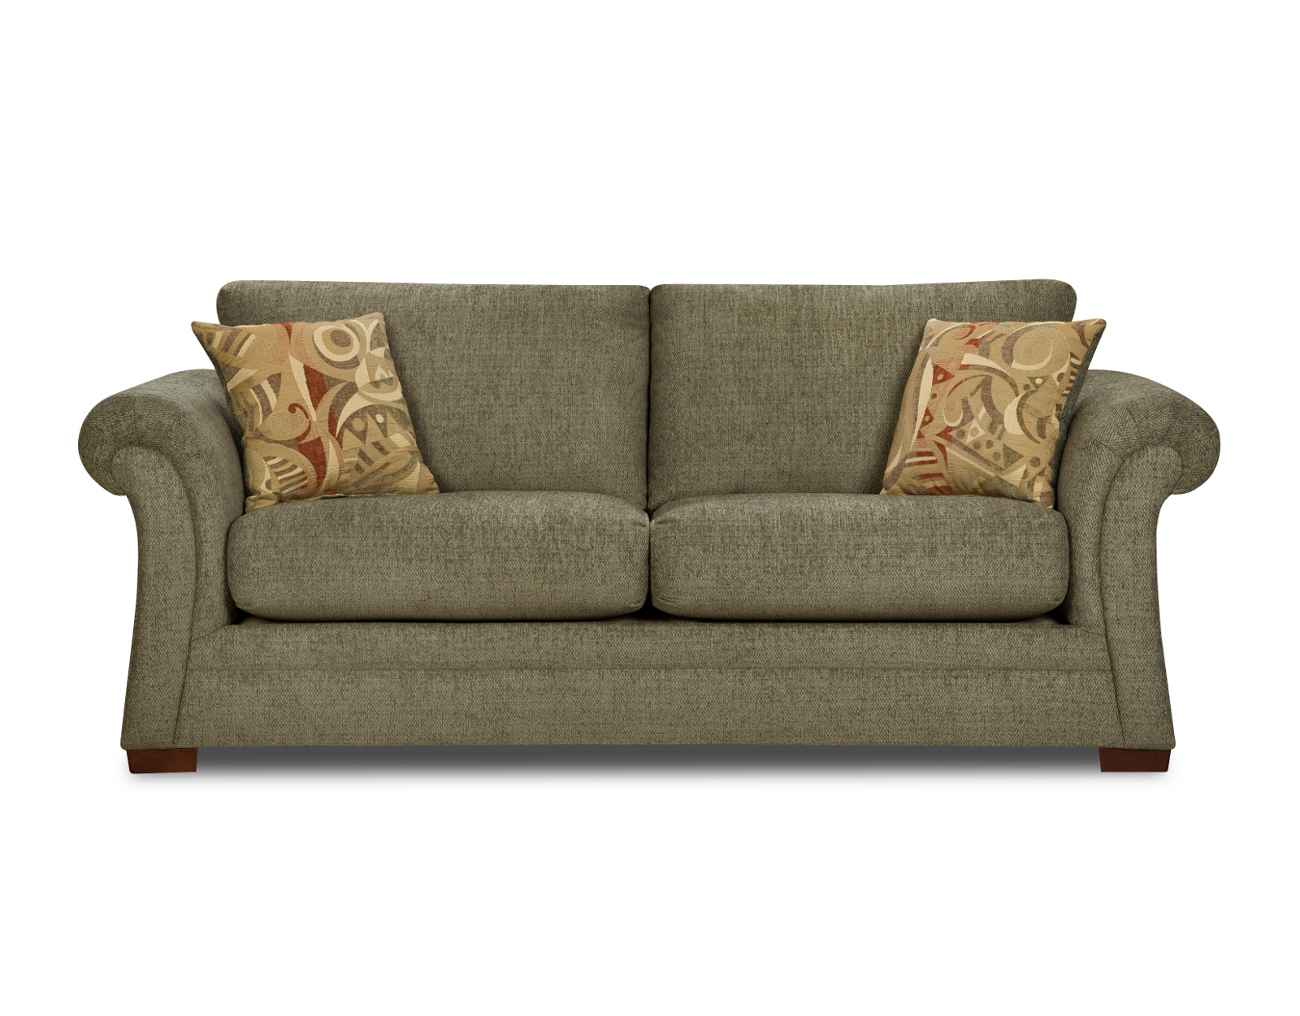 Cheap sofas couches living room images for Best inexpensive sofa